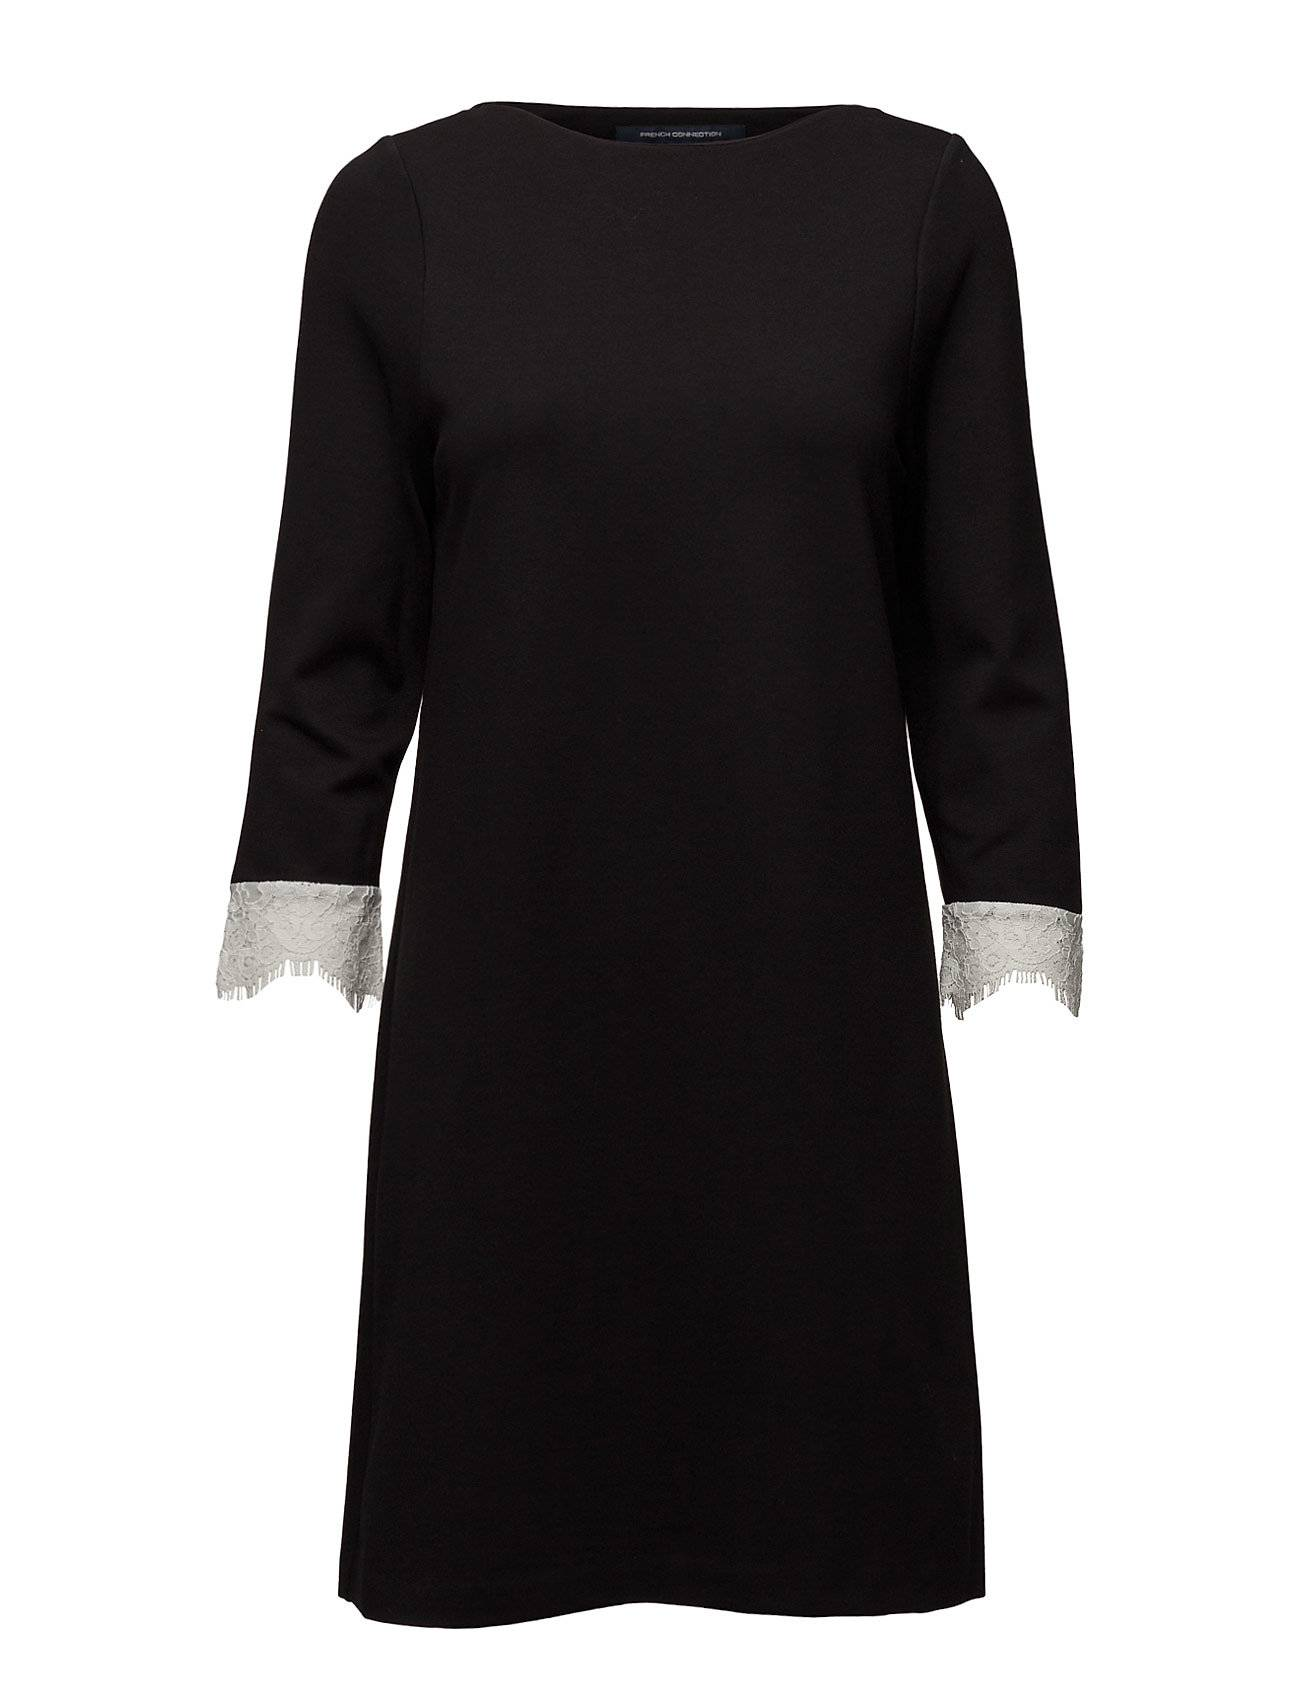 French Connection Lula Stretch L/S Slsh Nk Tunic